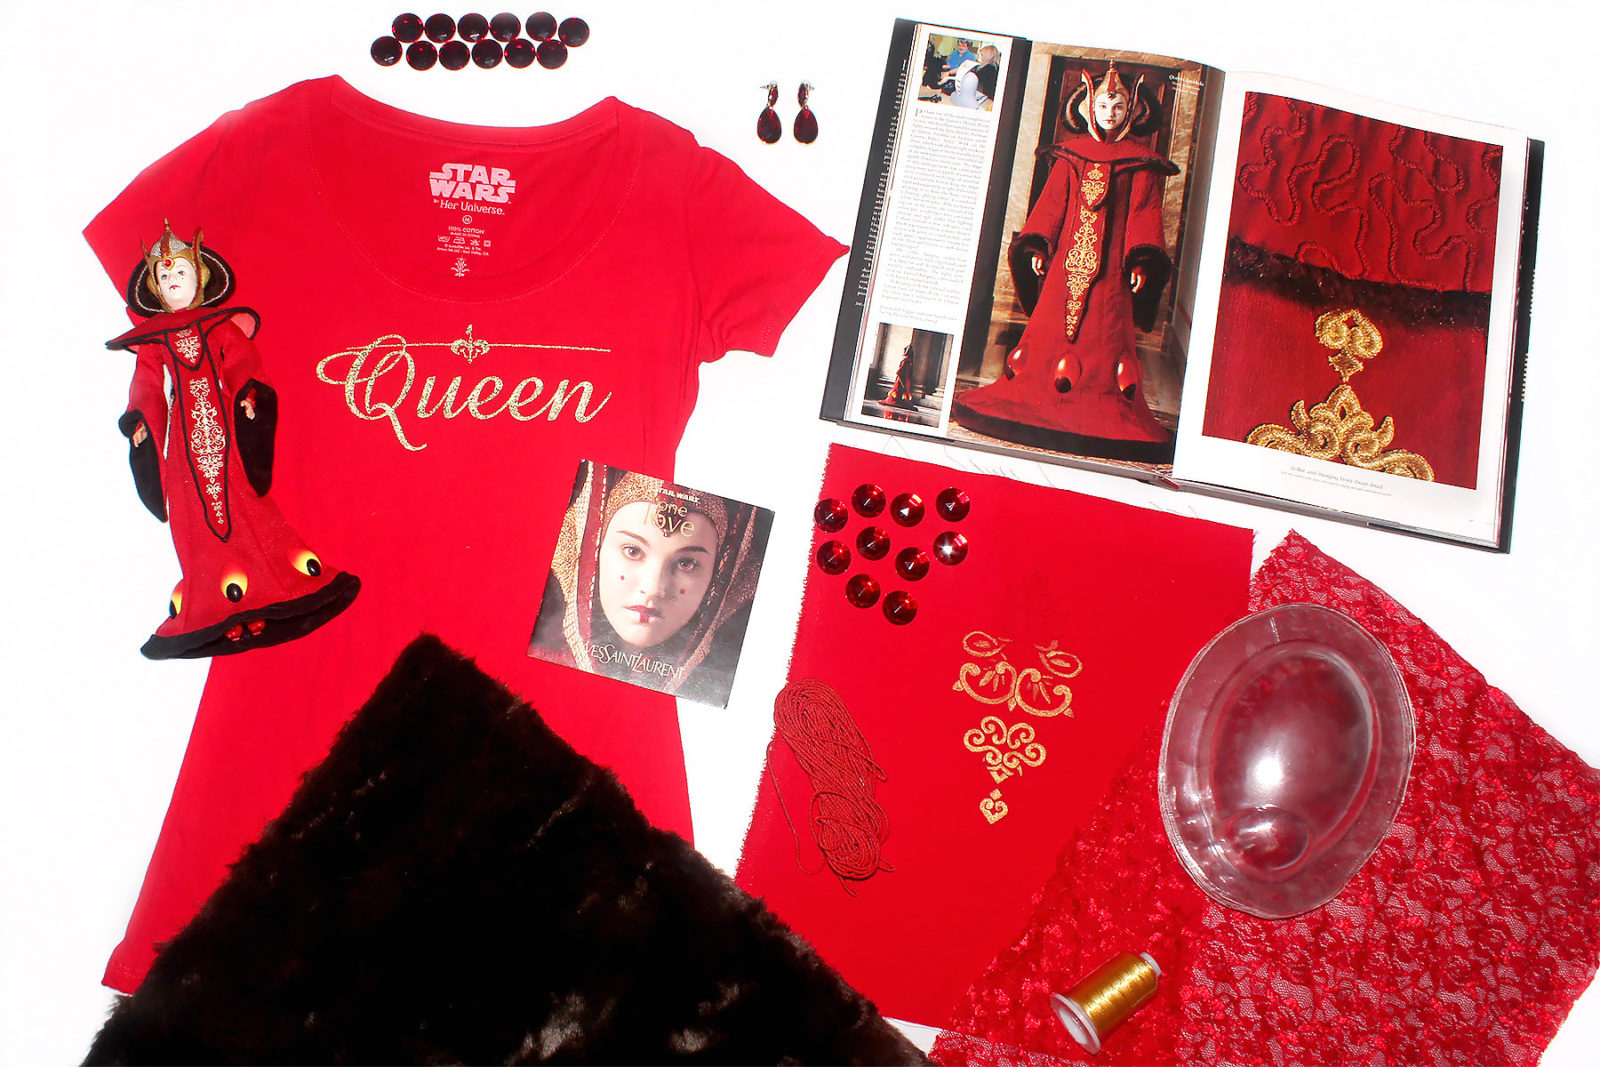 Queen Amidala - Theed Throne Room Gown inspired fashion